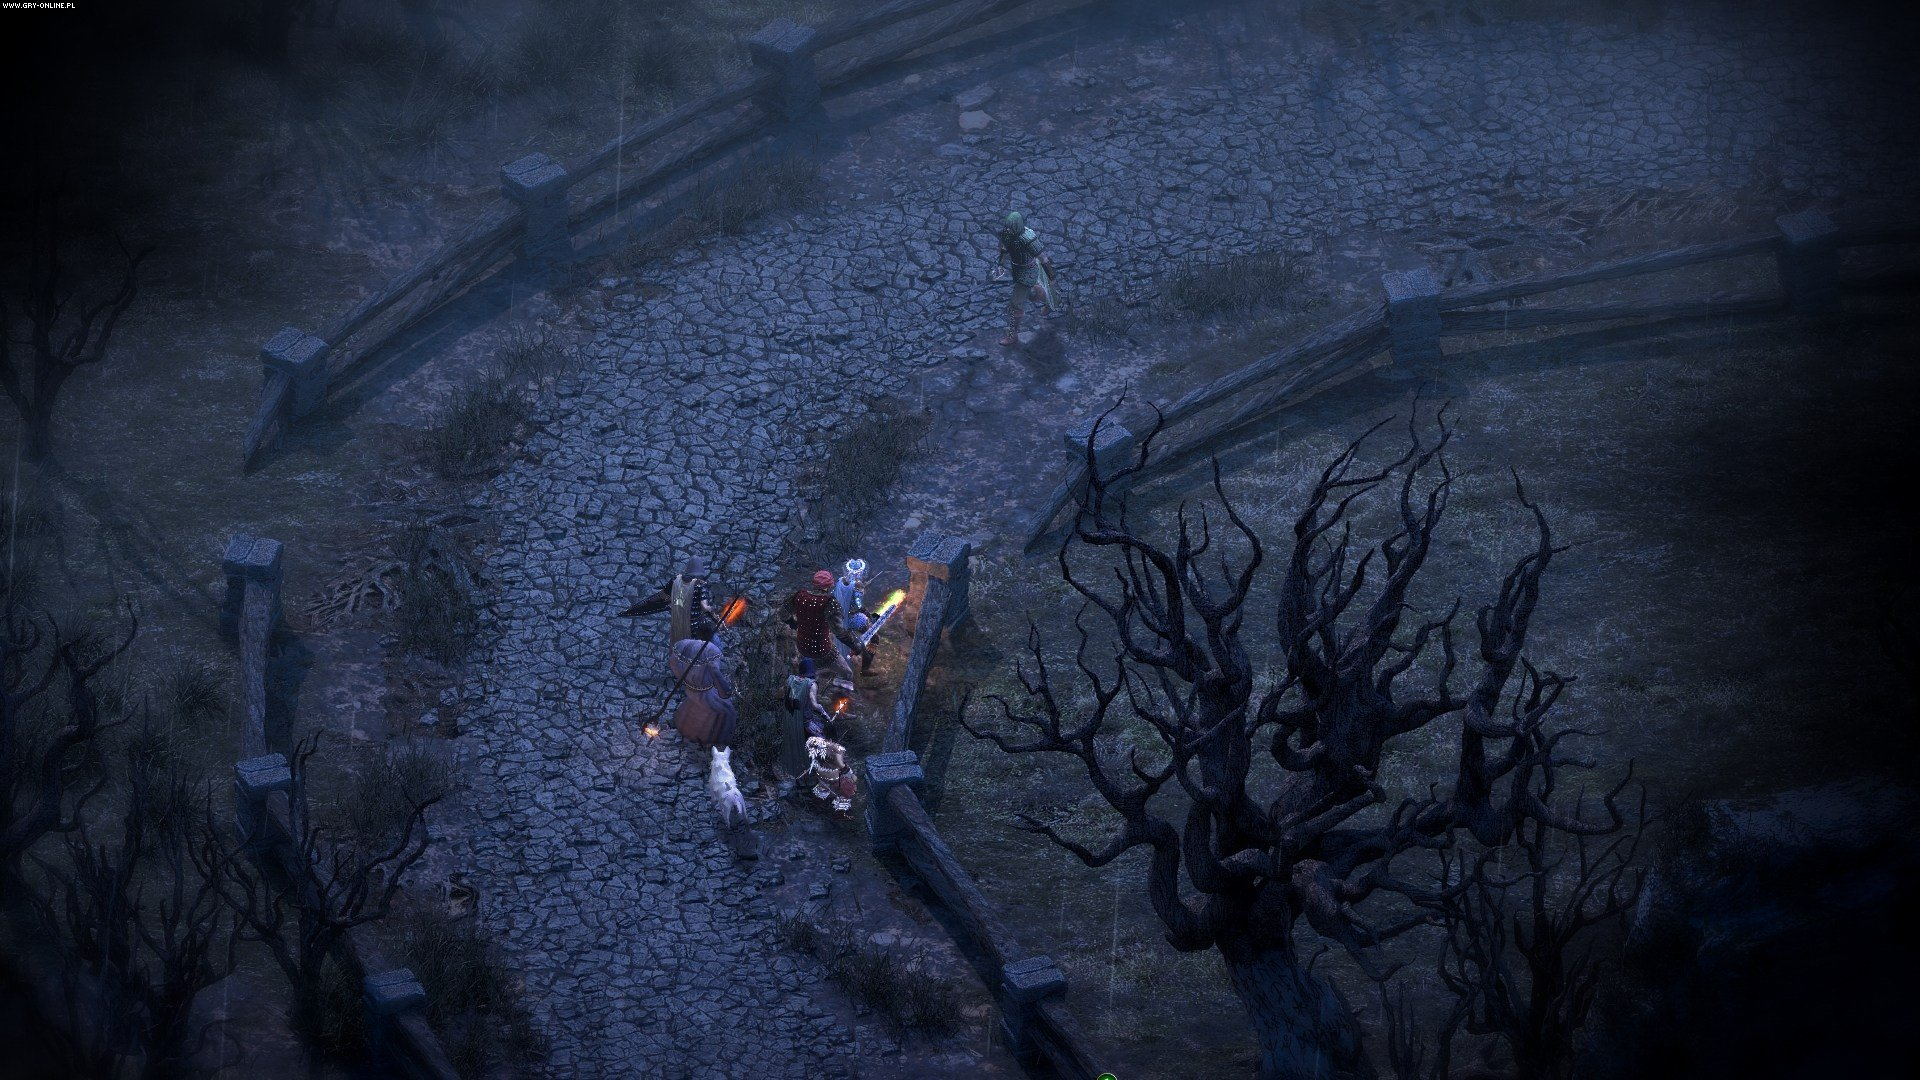 Pillars of Eternity PC Games Image 6/89, Obsidian Entertainment, Paradox Interactive